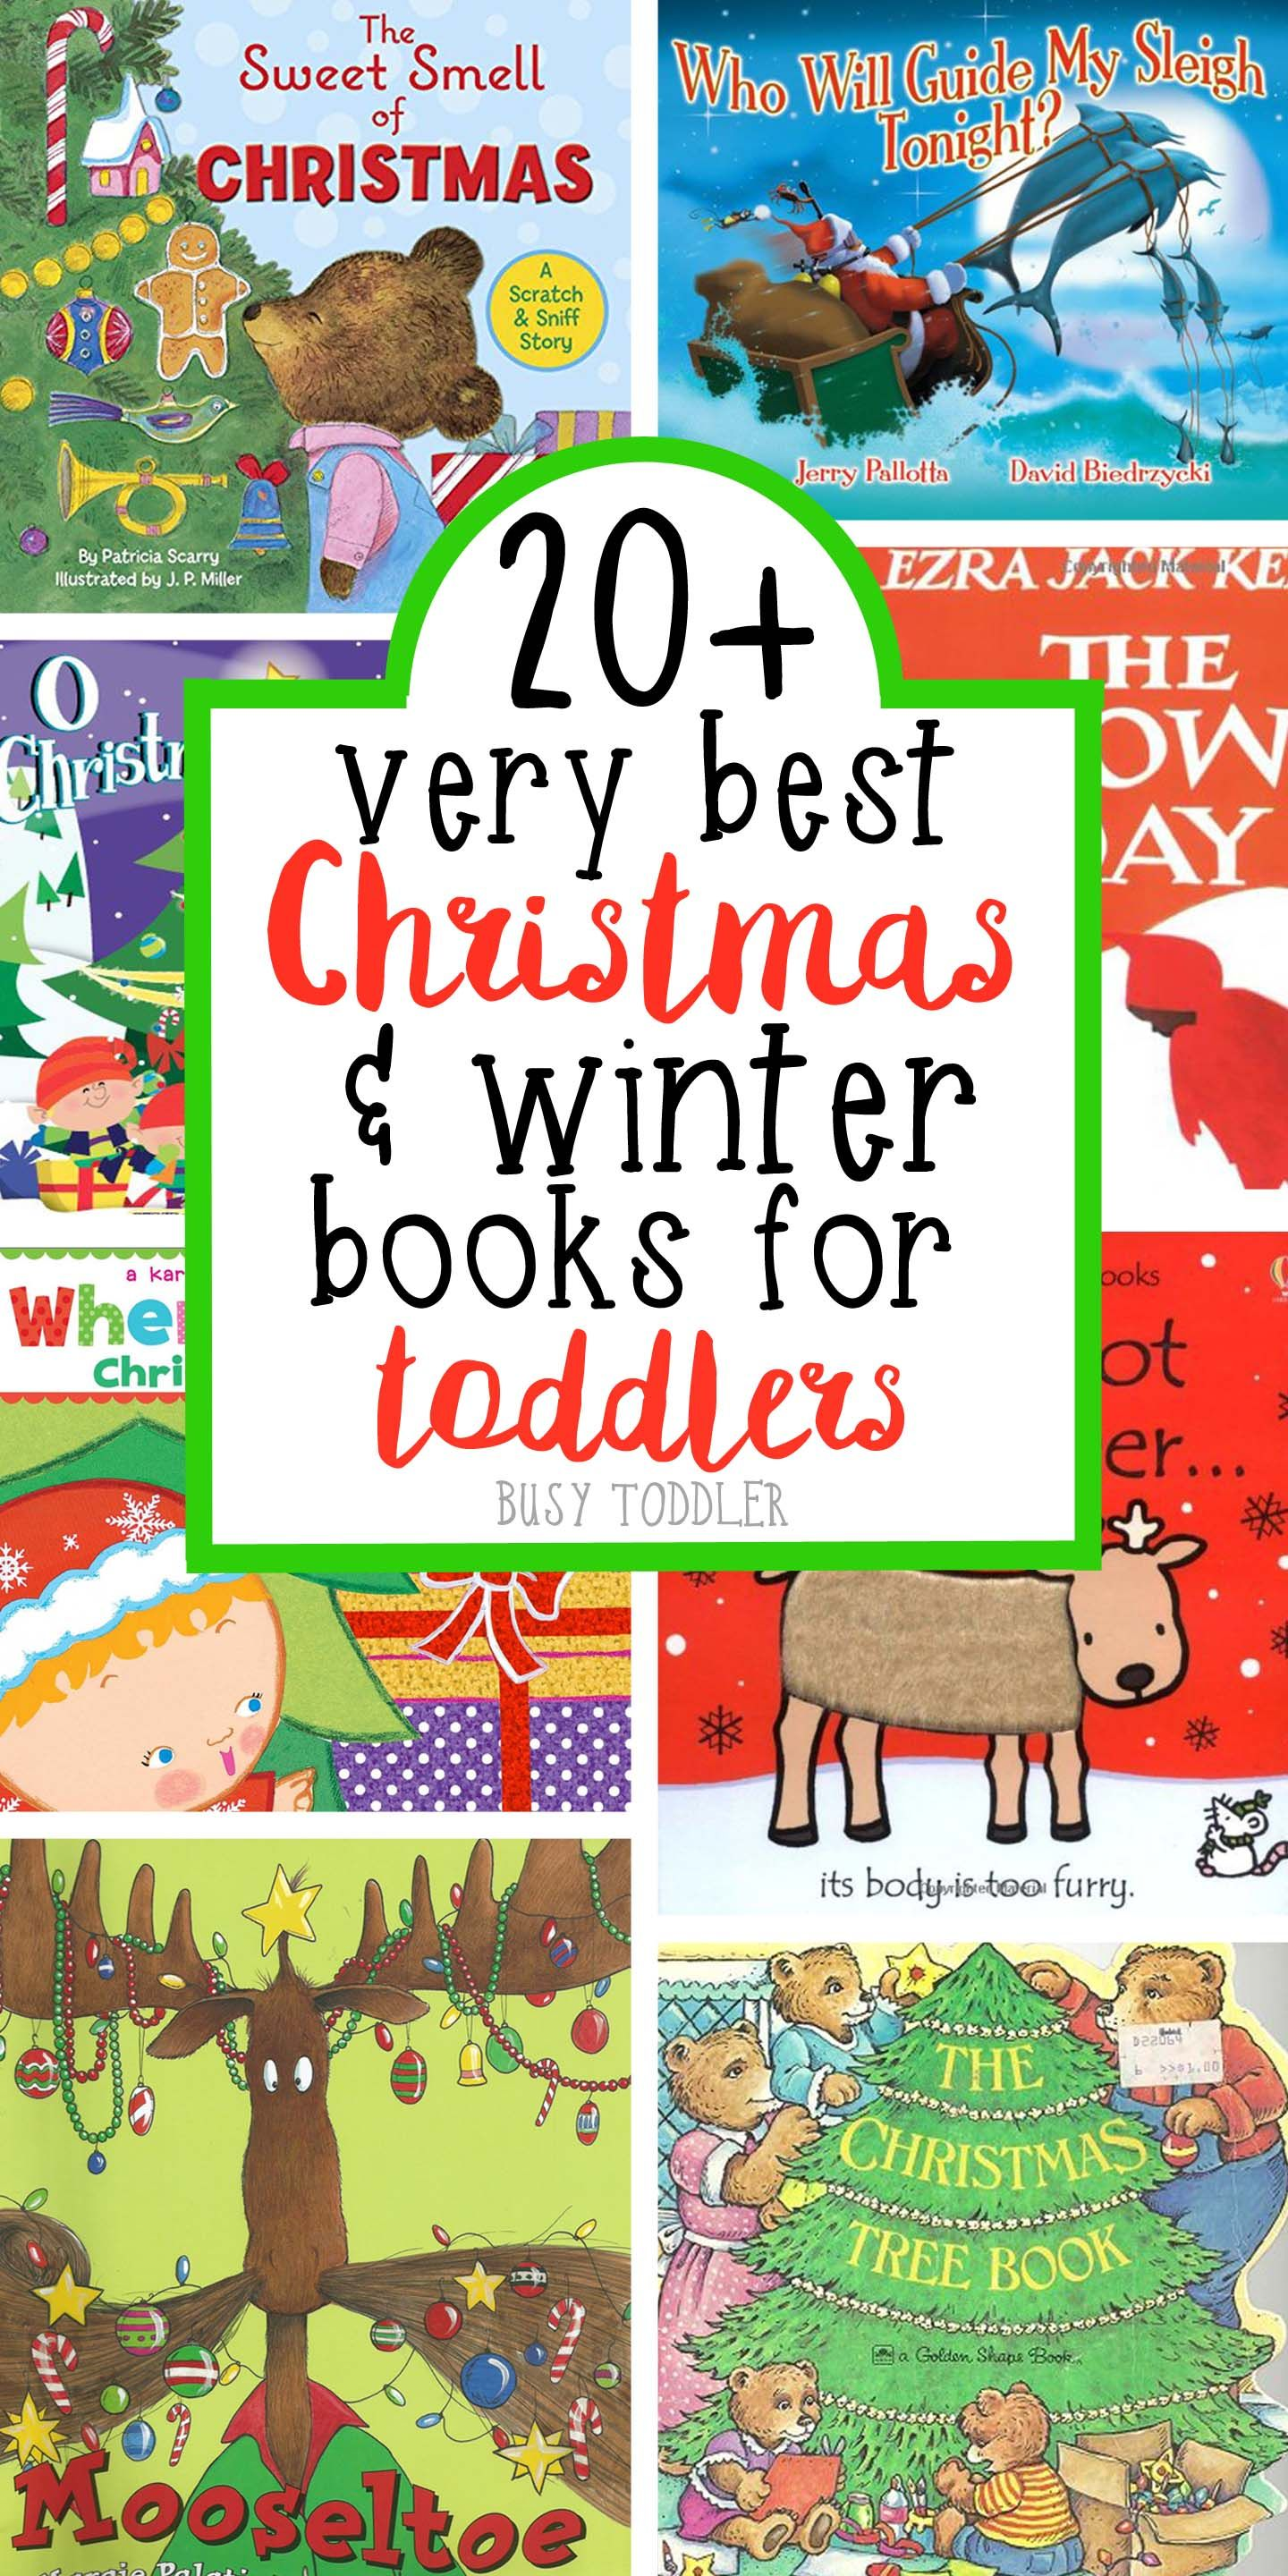 Best Christmas Books for Toddlers | Books for Kids | Pinterest ...